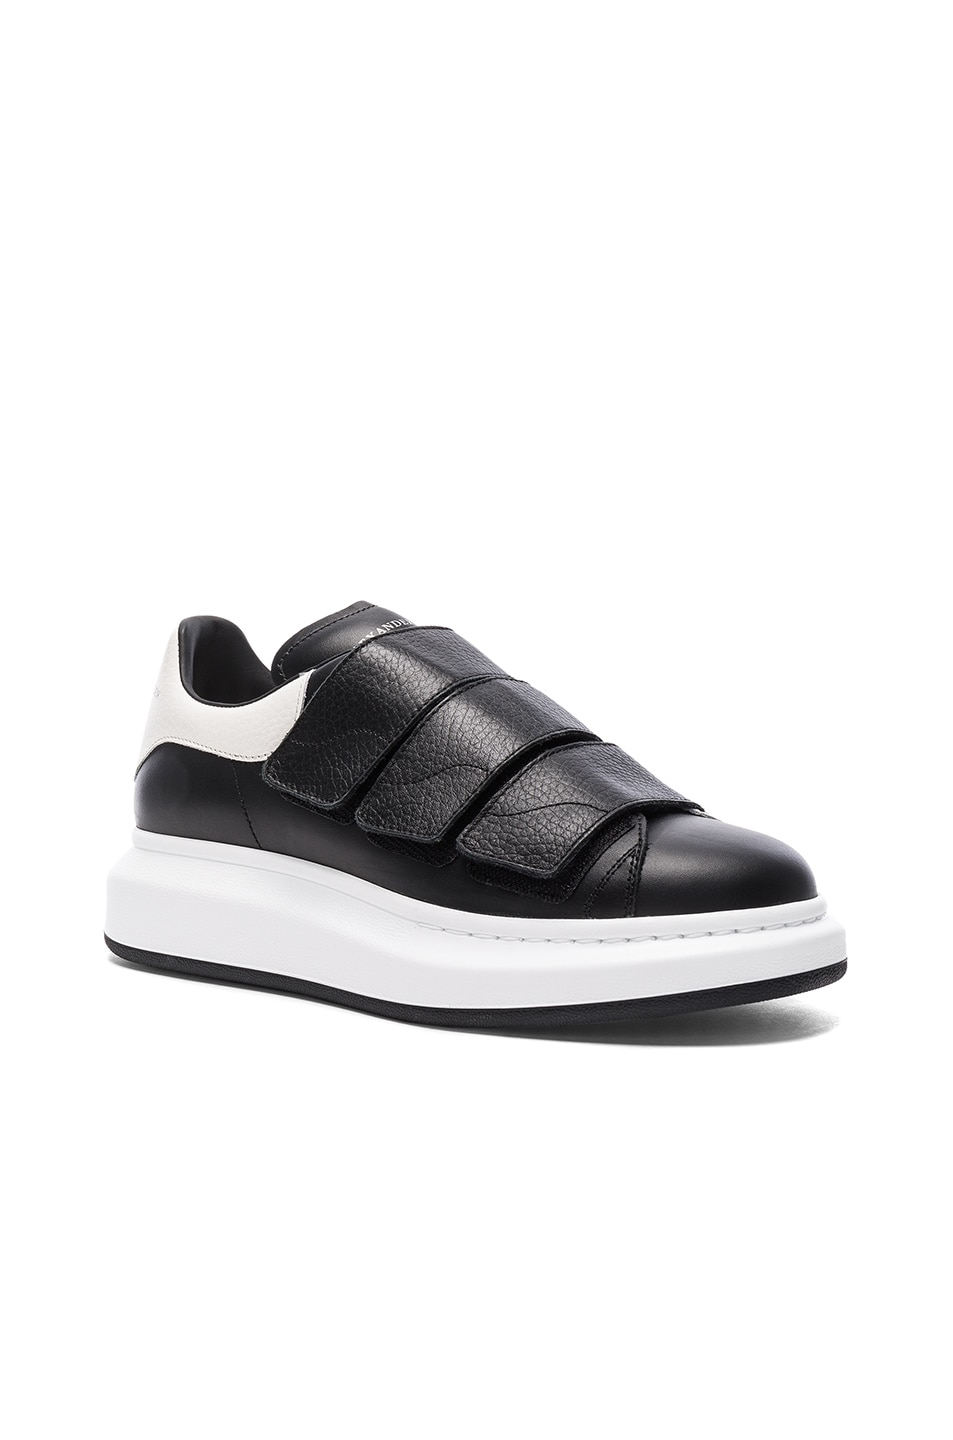 ddc66384 Image 1 of Alexander McQueen Leather Platform Velcro Sneakers in Black &  White